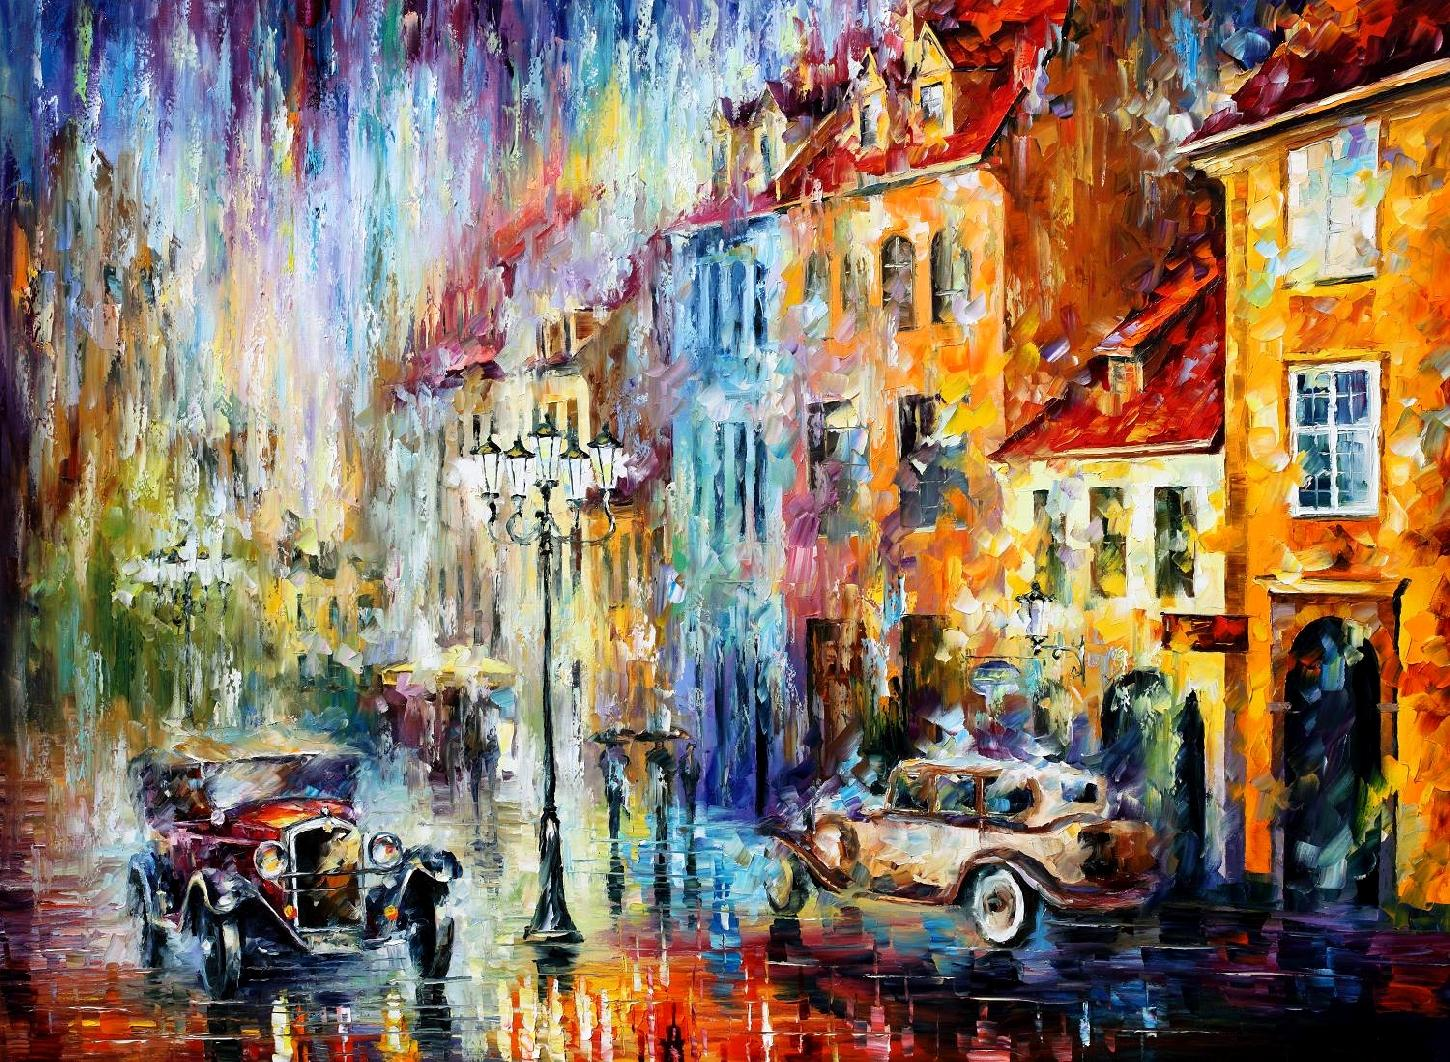 "LONG DAY - Original Oil Painting On Canvas By Leonid Afremov - 40""X30"" (100cm x 75 cm)"